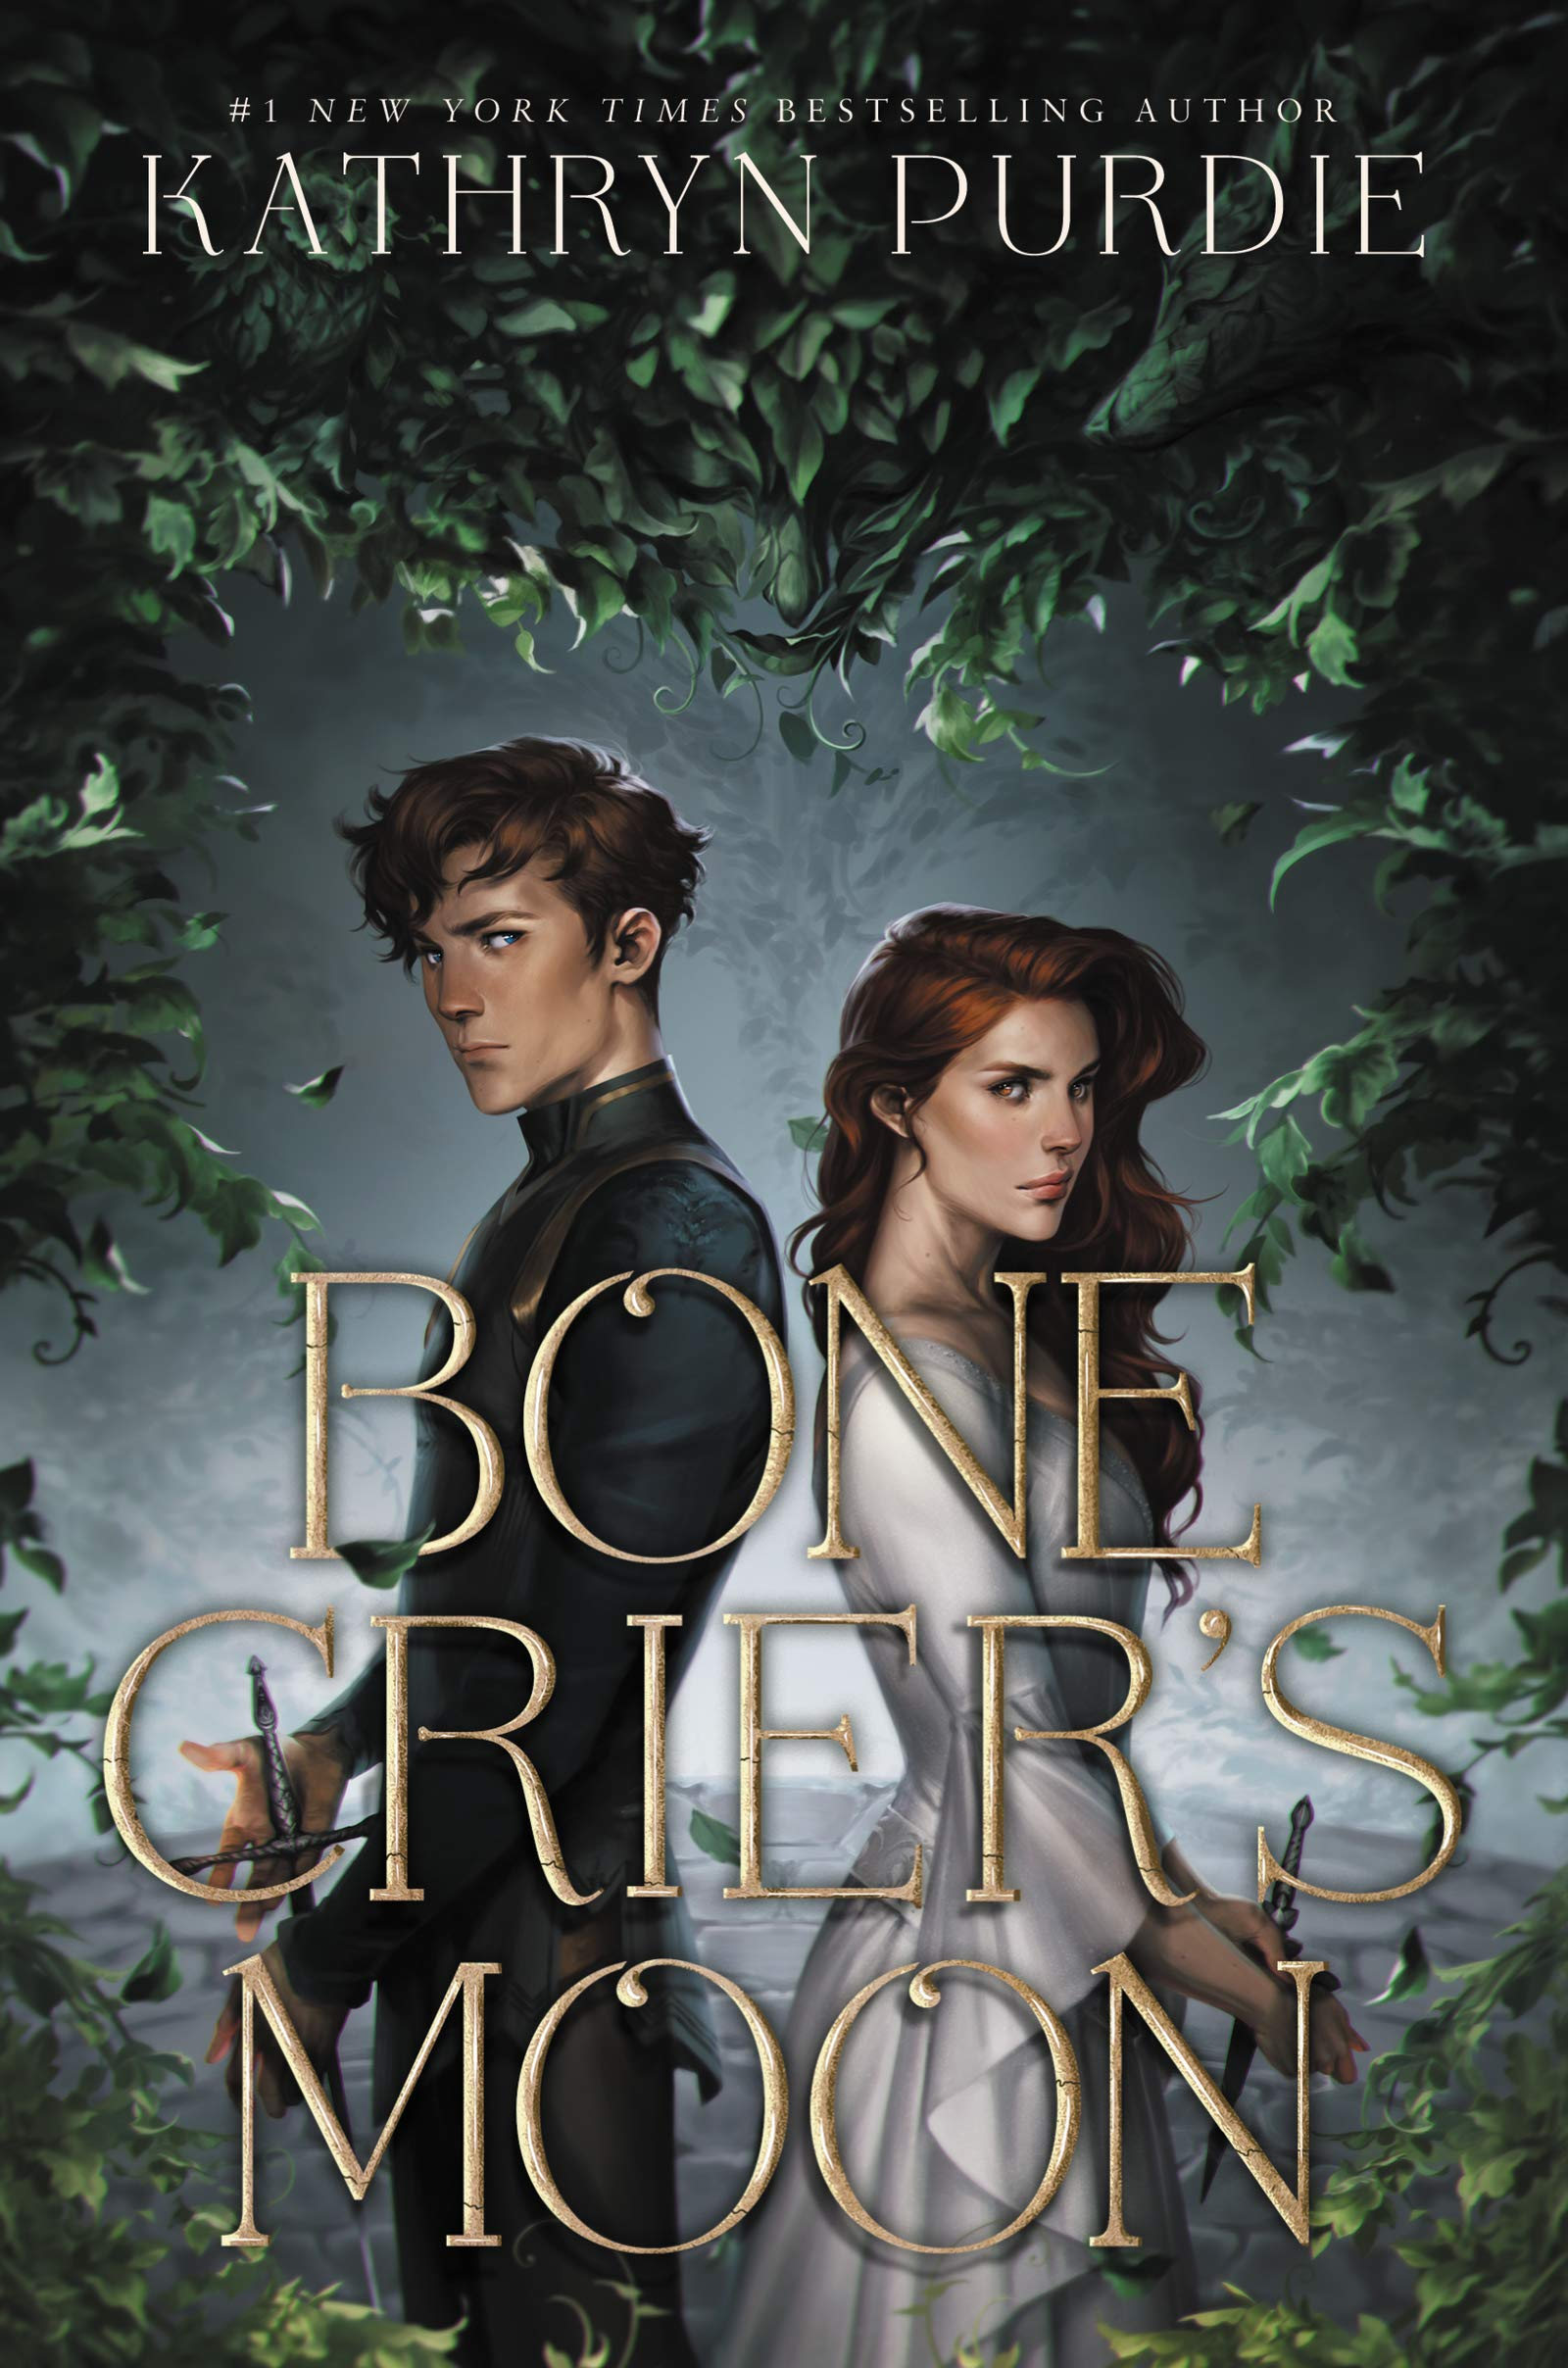 Bone Criers Moon, The: Amazon.co.uk: Purdie, Kathryn: Books